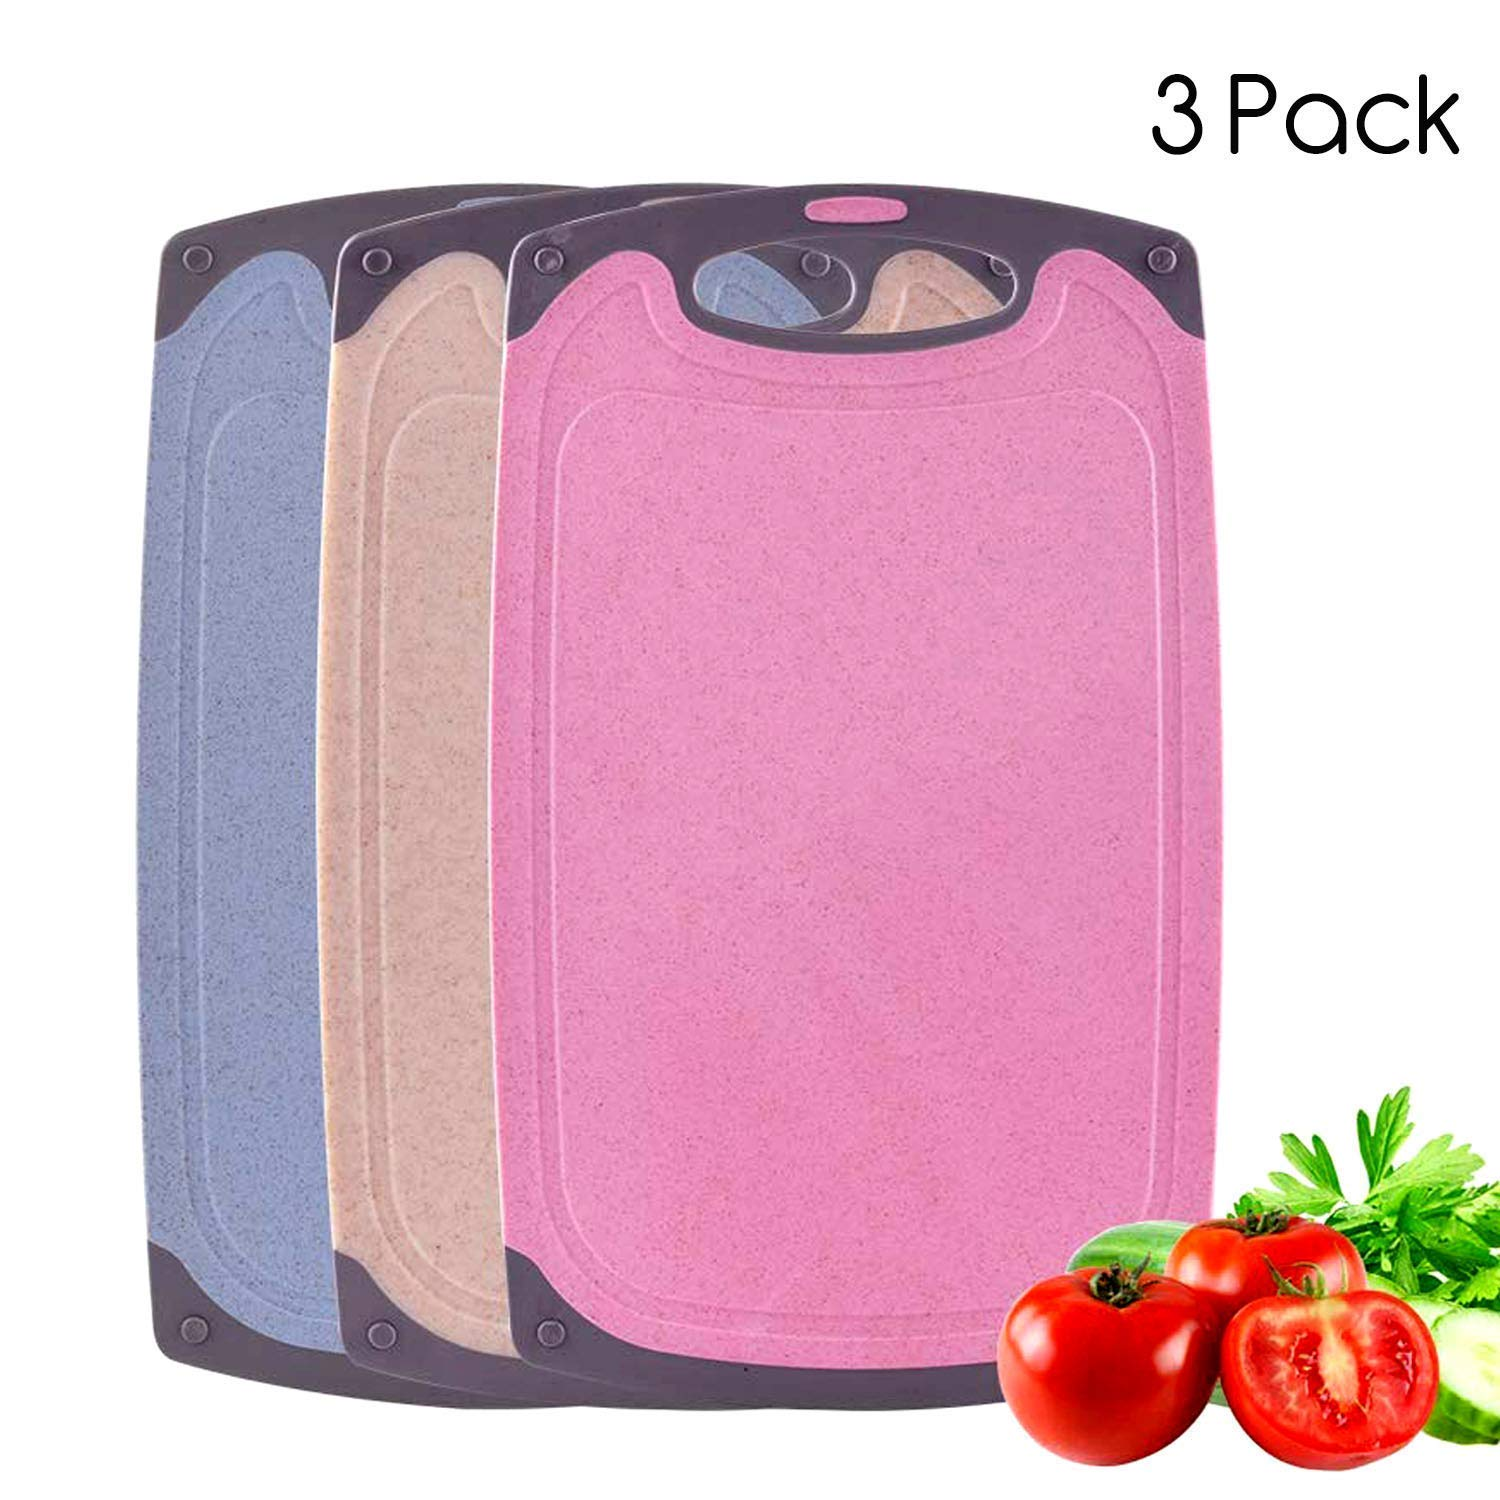 Cutting Boards Set,3-Pieces Plastic Chopping Board BPA Free,Large and Thick Kitchen Cutting Board with Non-Slip Feet and Juice Grooves,Dishwasher Safe-(Pink, Blue, Beige)